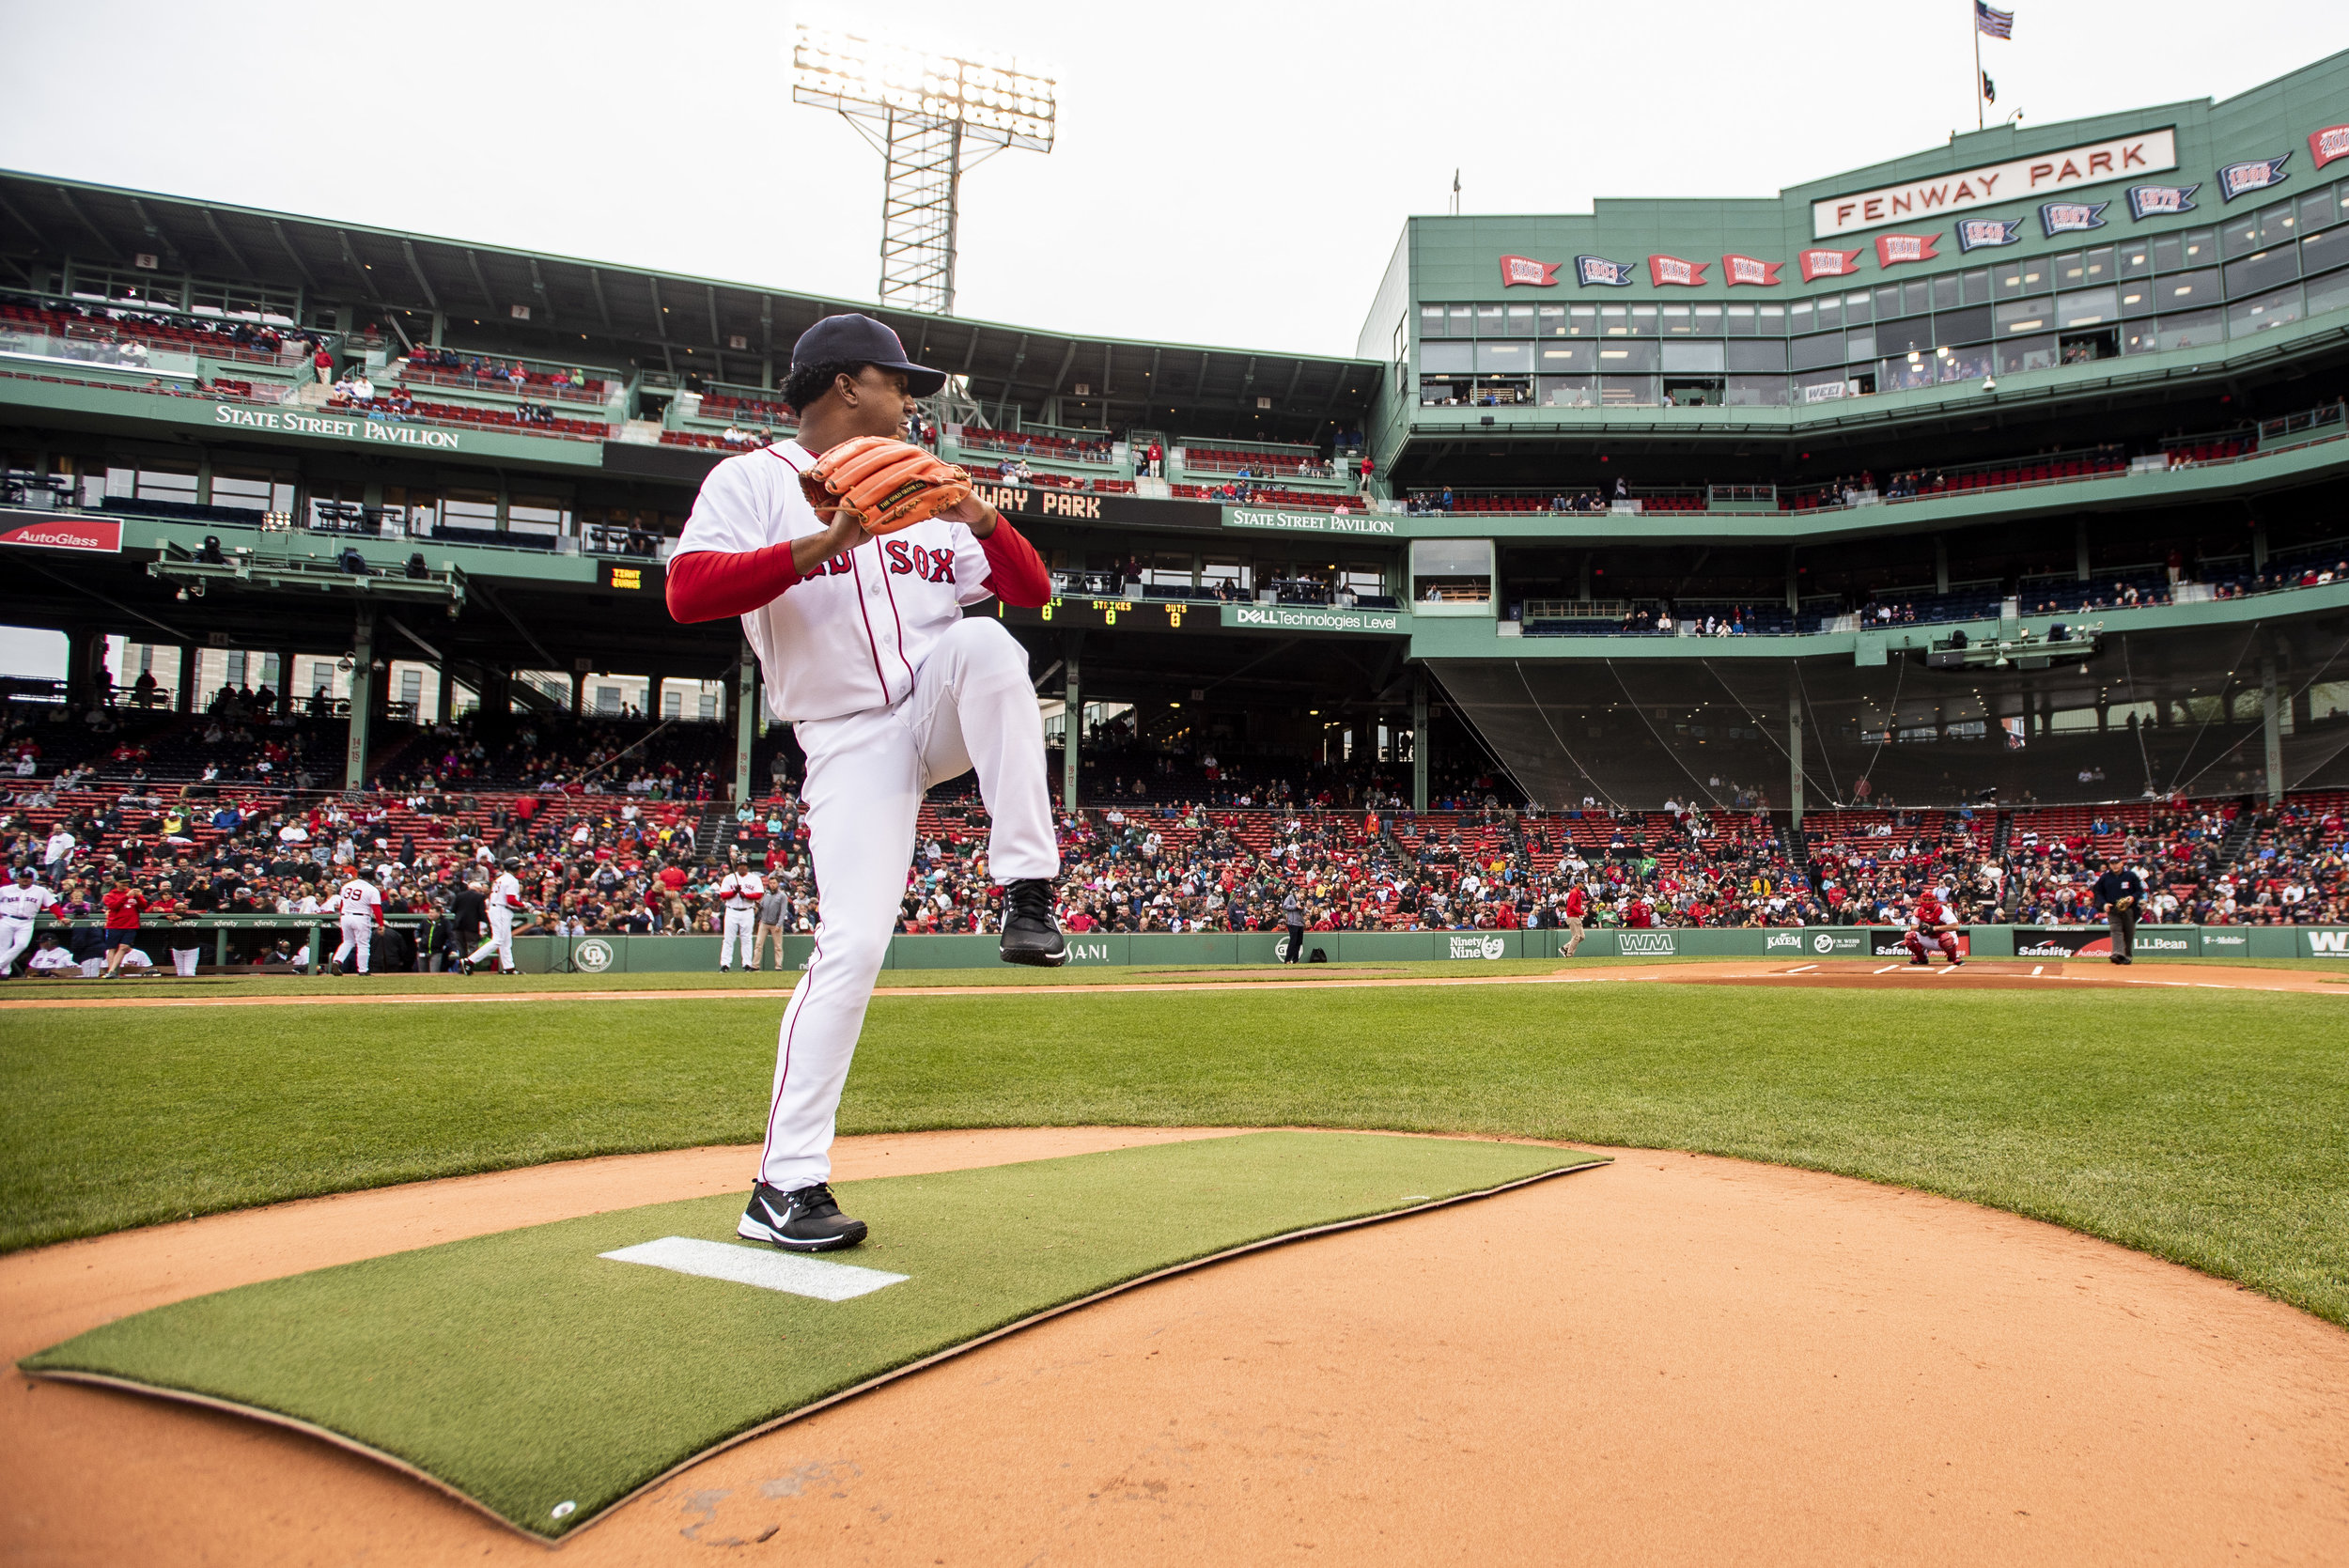 May 27, 2018, Boston, MA: Pedro Martinez throws off the mound during the Red Sox Alumni Game at Fenway Park in Boston, Massachusetts on Sunday, May 27, 2018. (Photo by Matthew Thomas/Boston Red Sox)